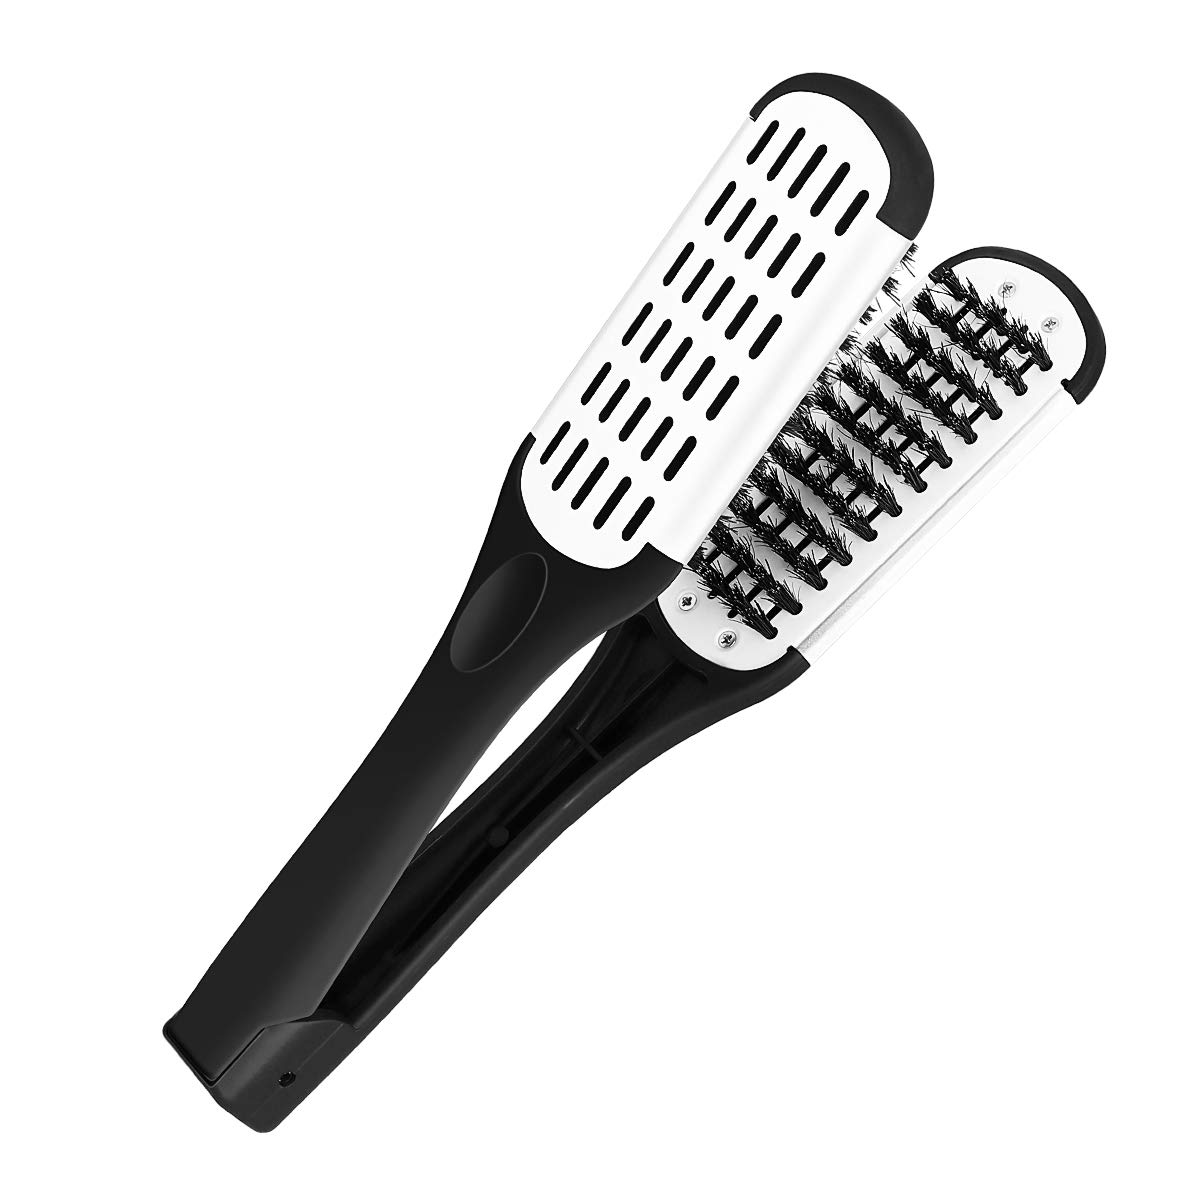 Hair Comb Hair Straightening Comb Styling Tools Boar Bristle Double Sided Brush Comb Clamp (Black)